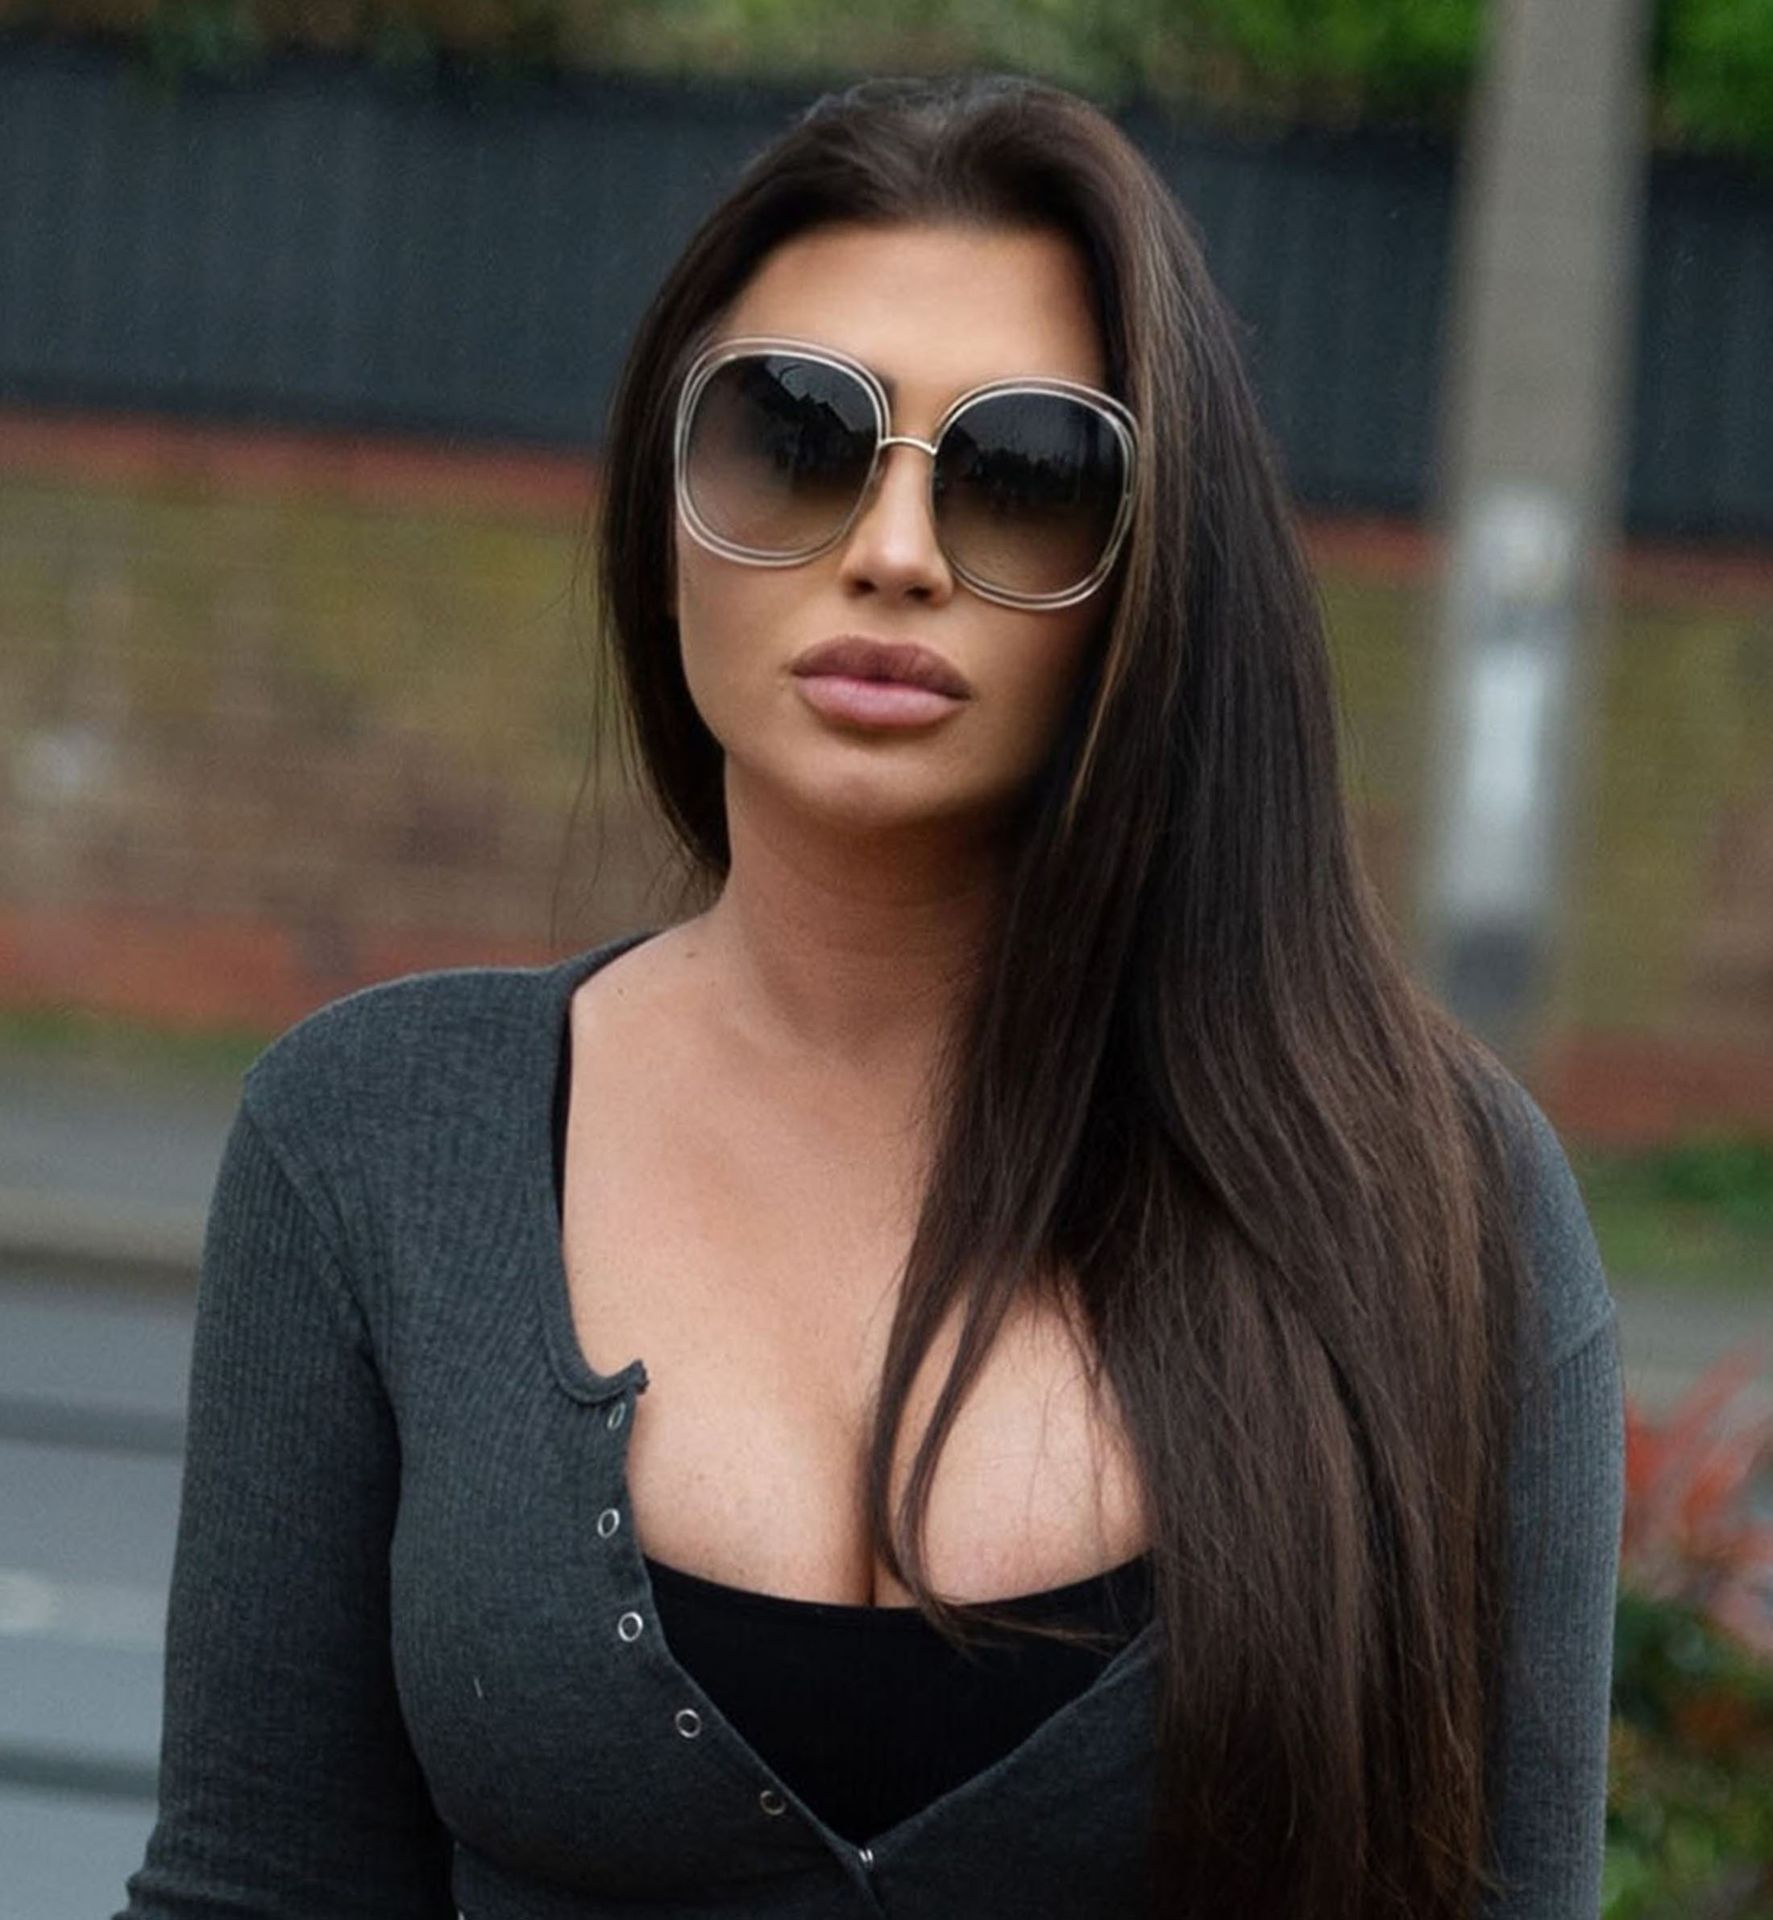 Lauren Goodger Spotted Leaving Her Home Going To Her Local Shops 0011